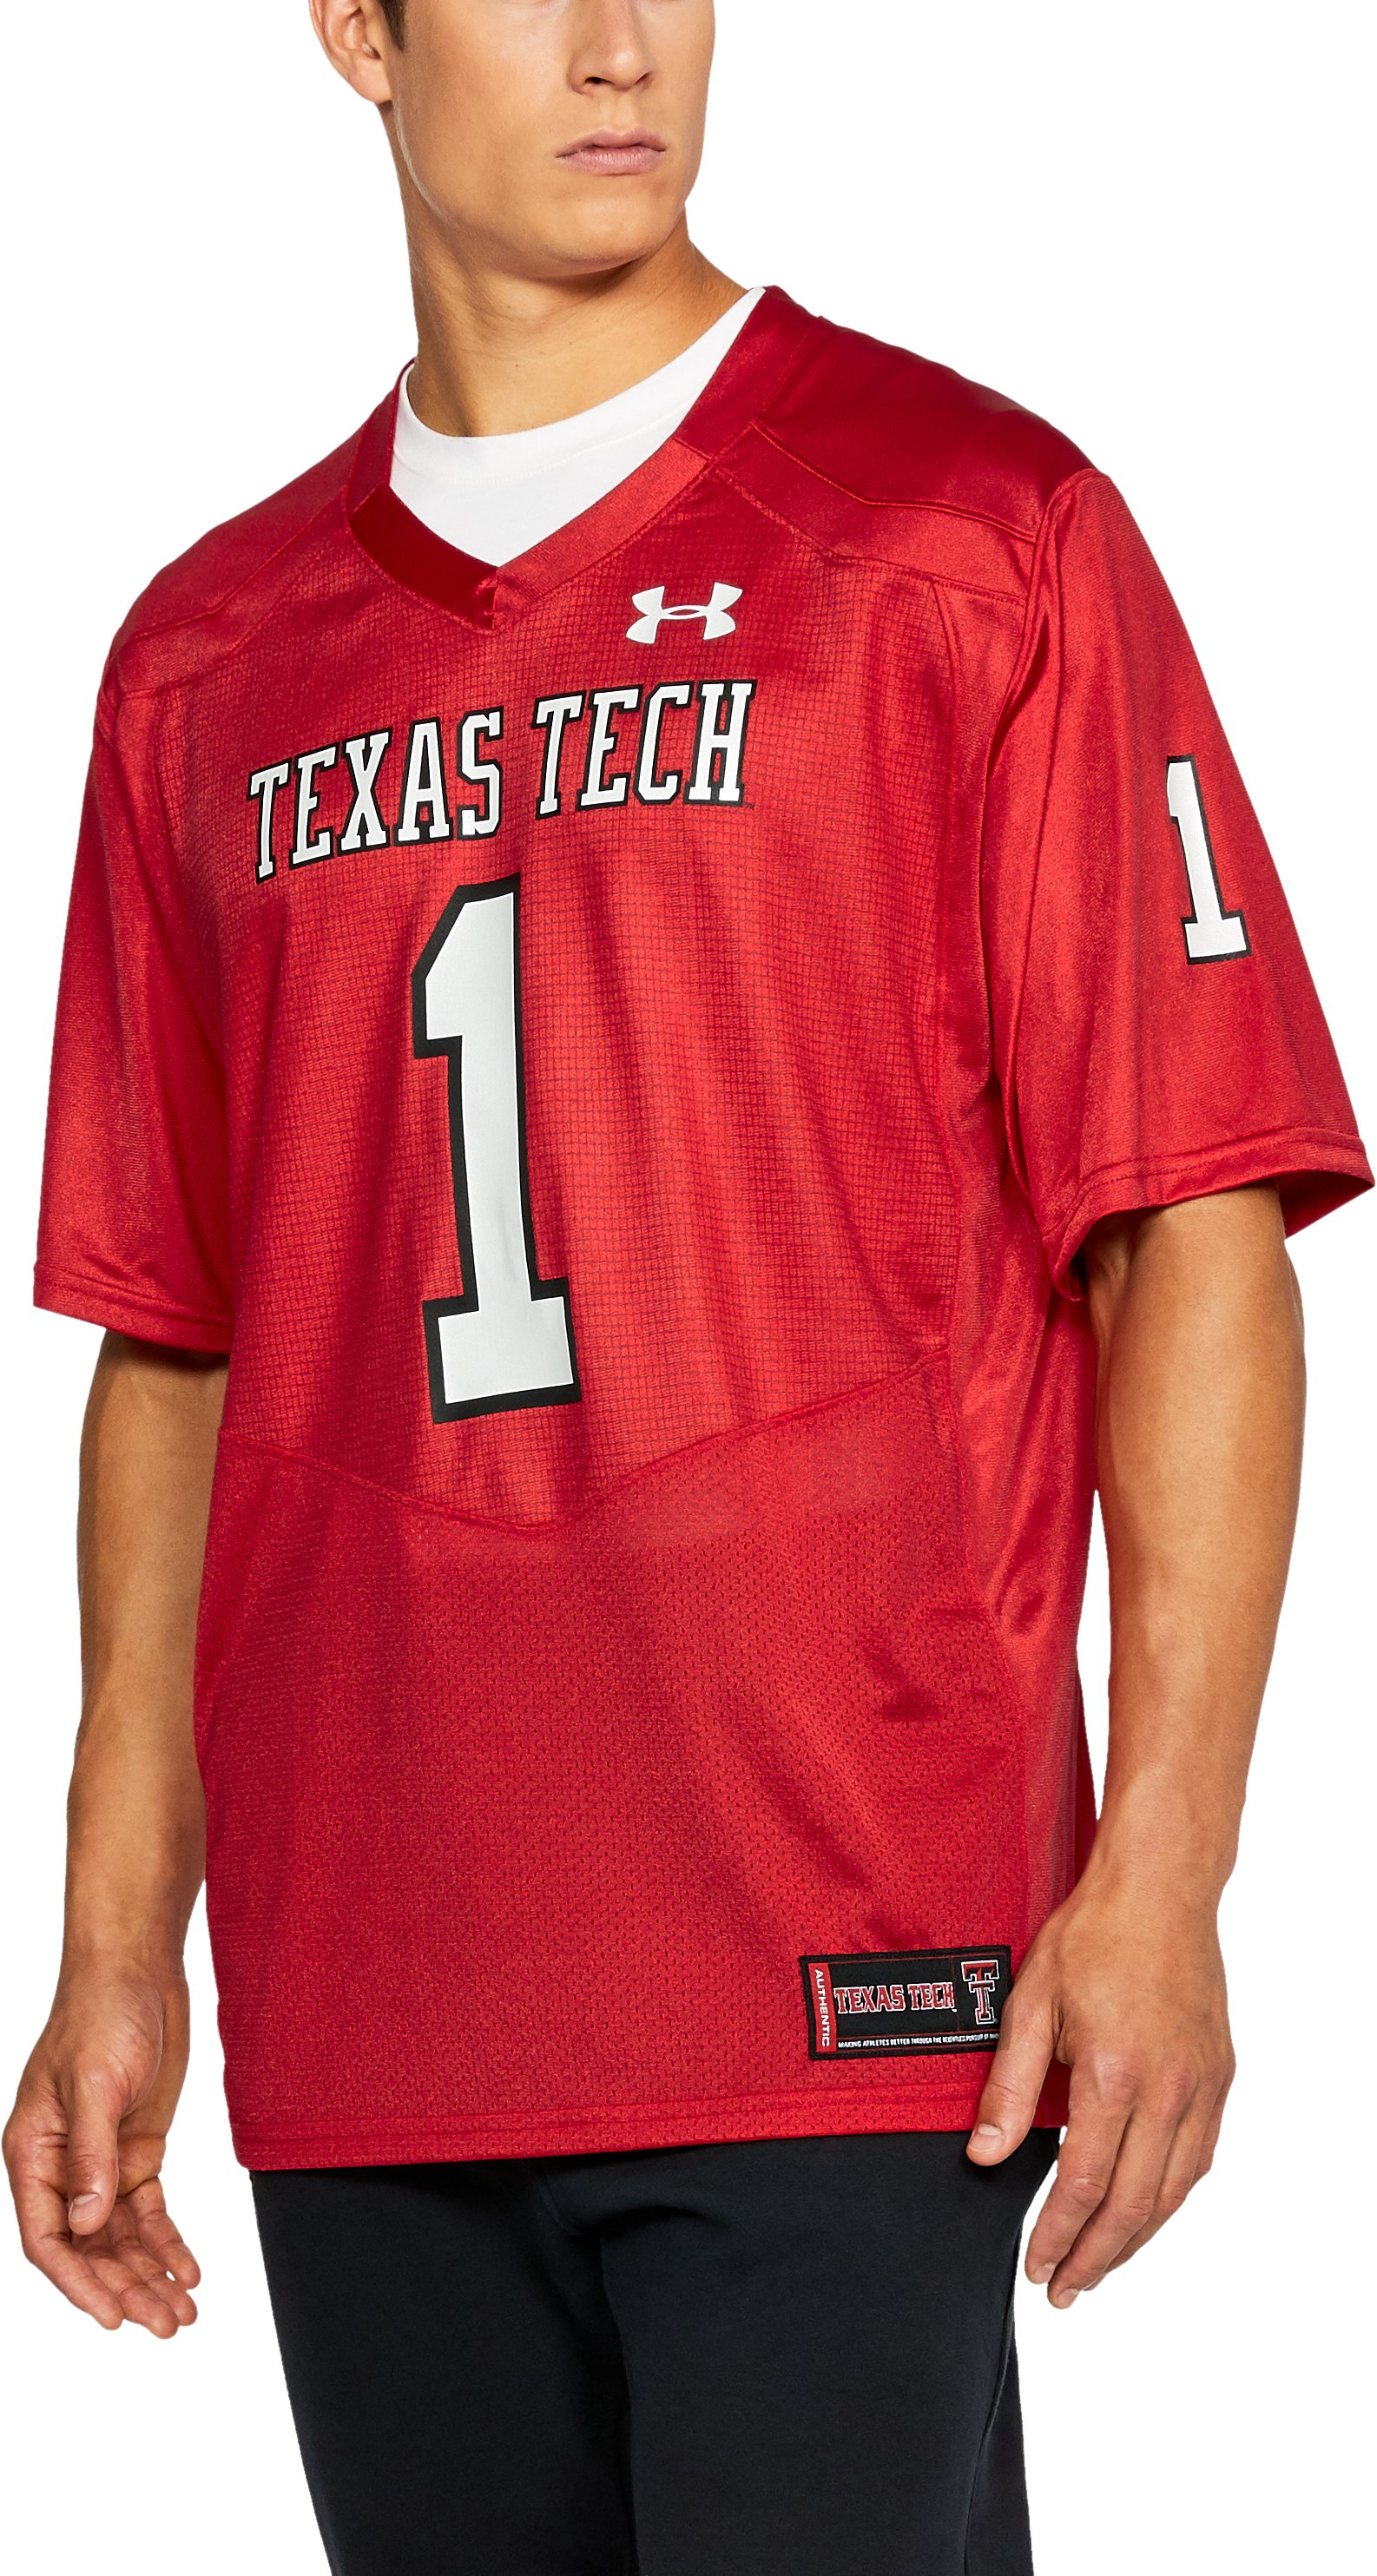 Men's Texas Tech Replica Jersey, Red,